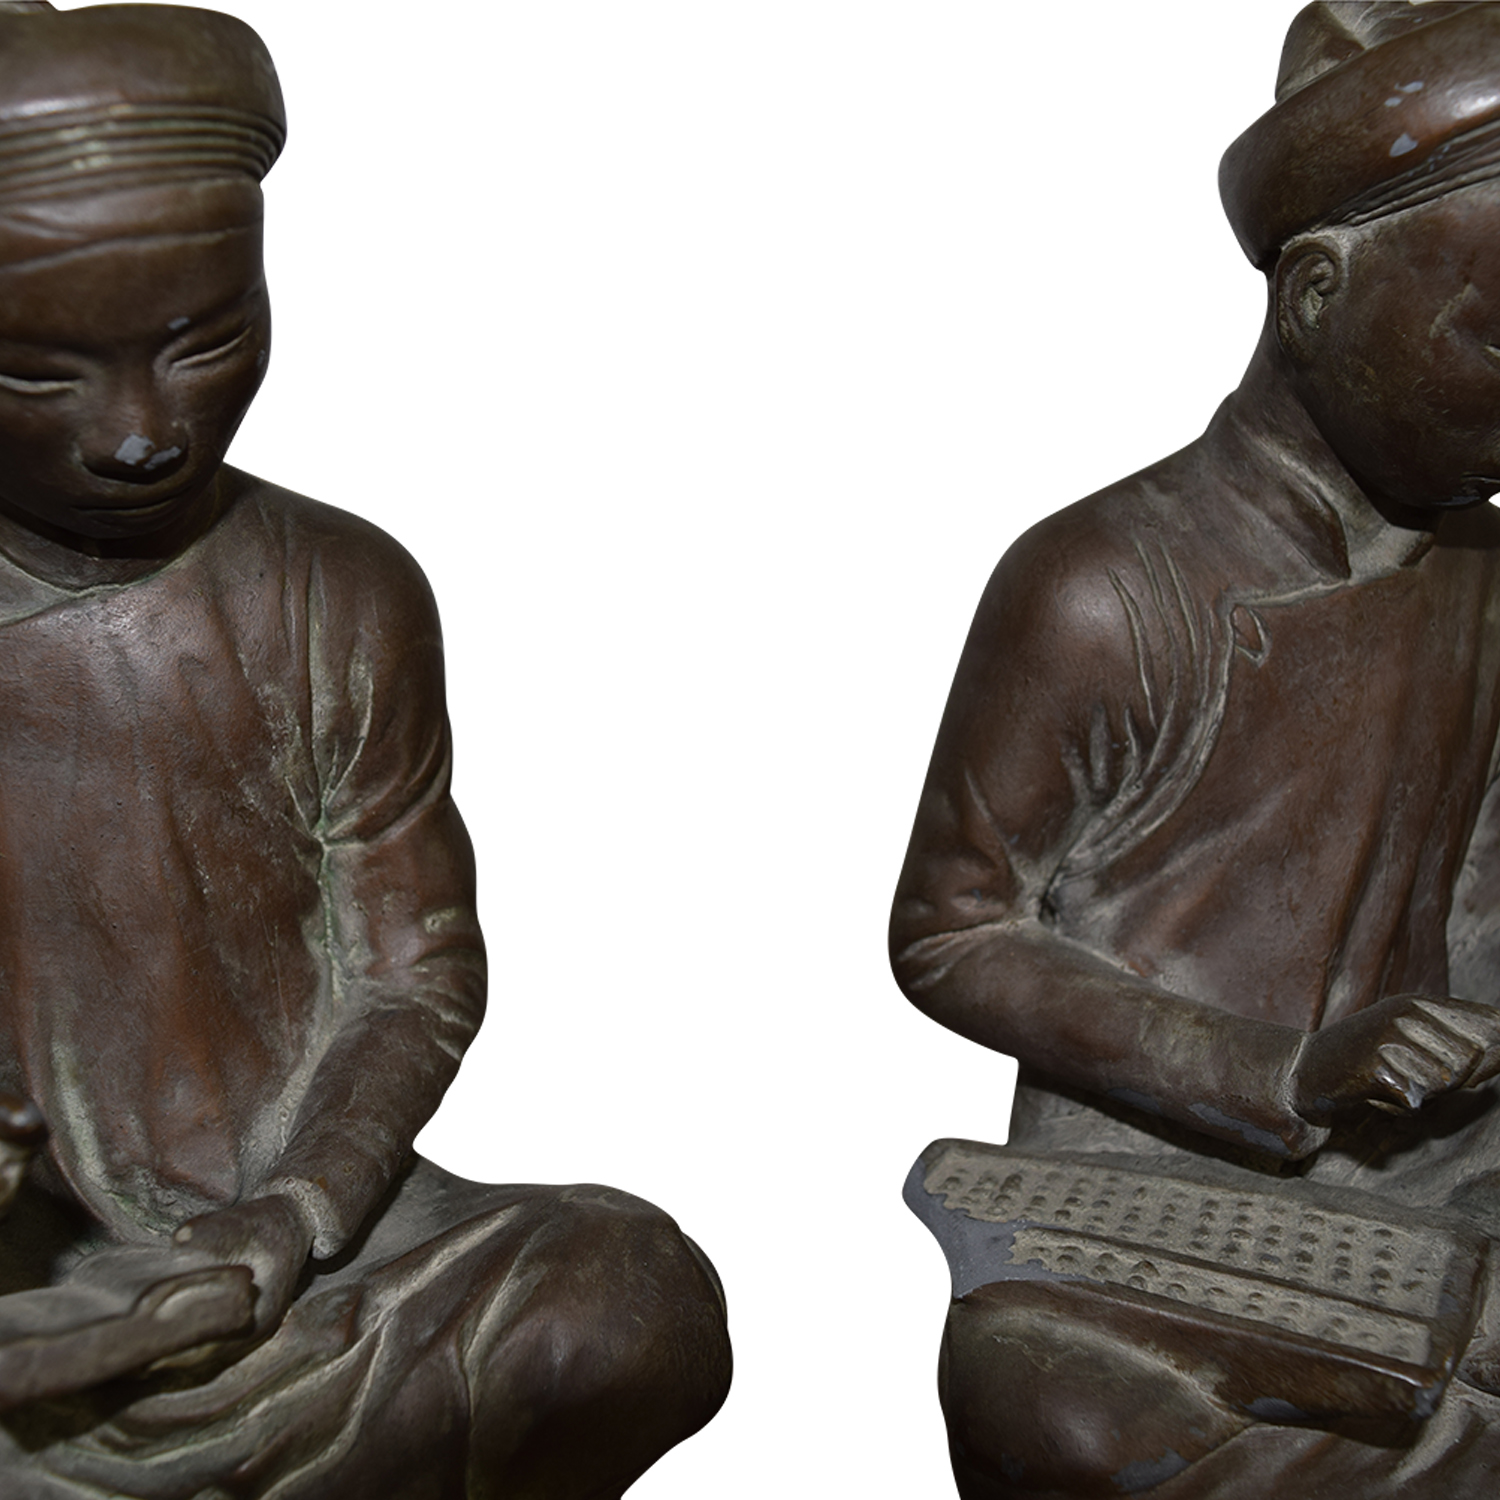 Asian Metal Table Statues used